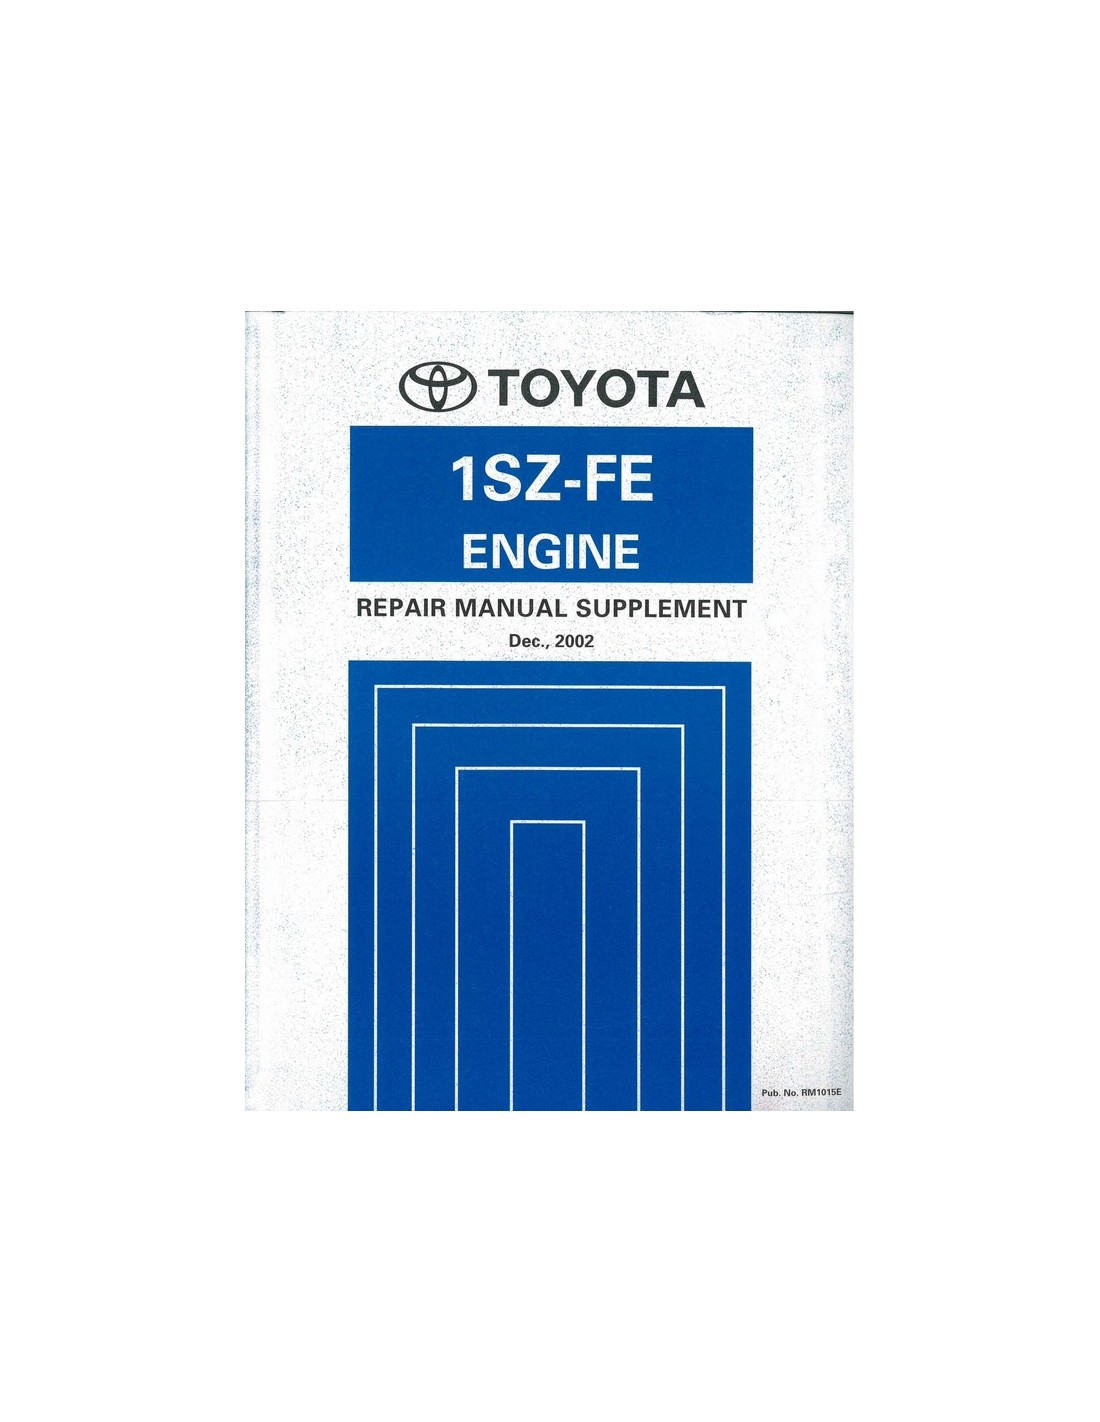 2003 toyota yaris echo engine repair manual english rh autolit eu Miller Blue Star 2E Engine 2e engine service manual pdf